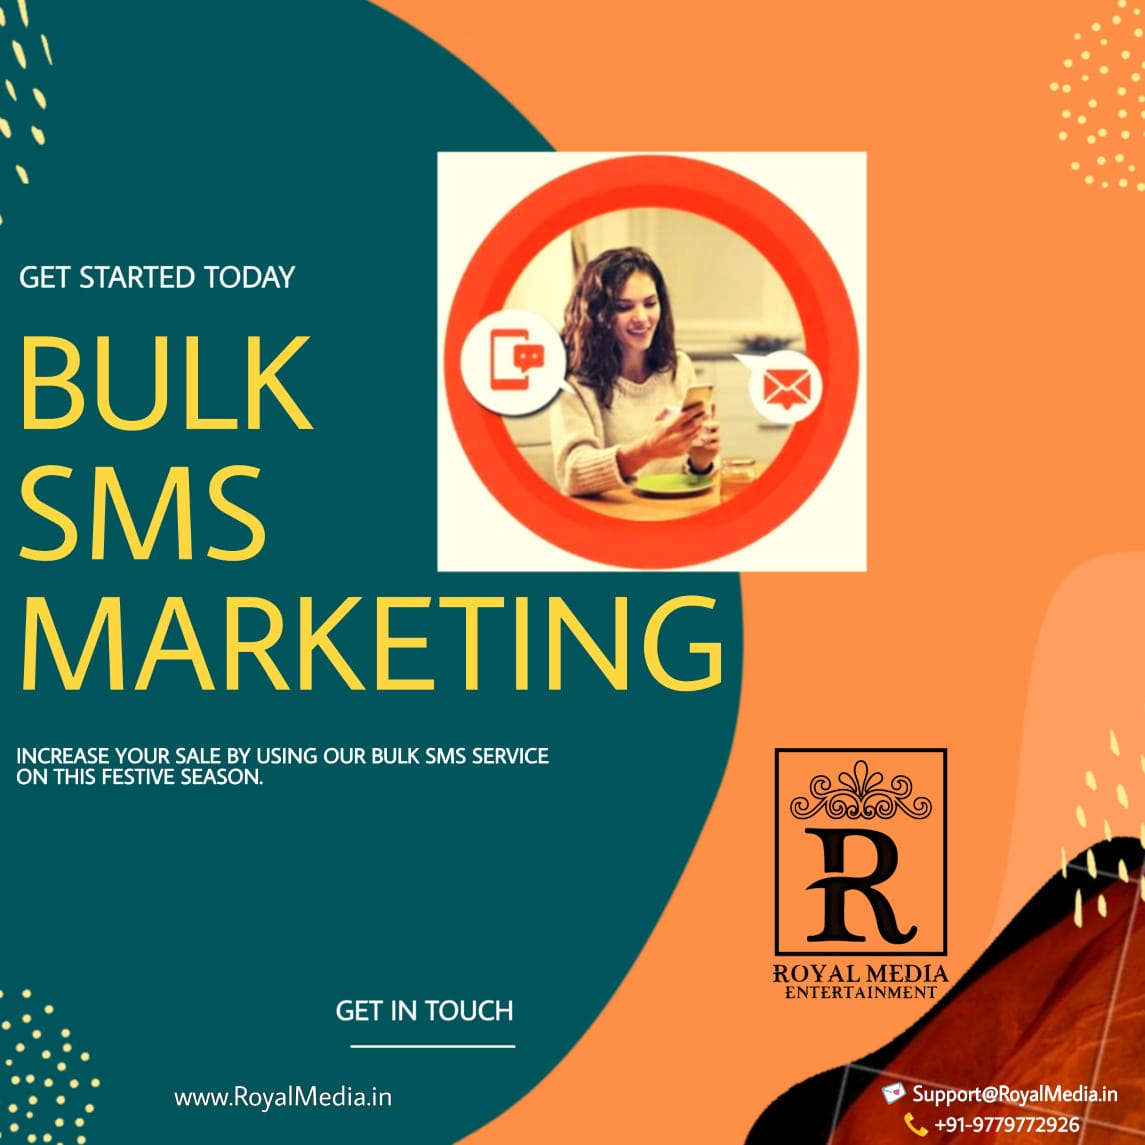 🌟100% surety of BULK SMS delivery.